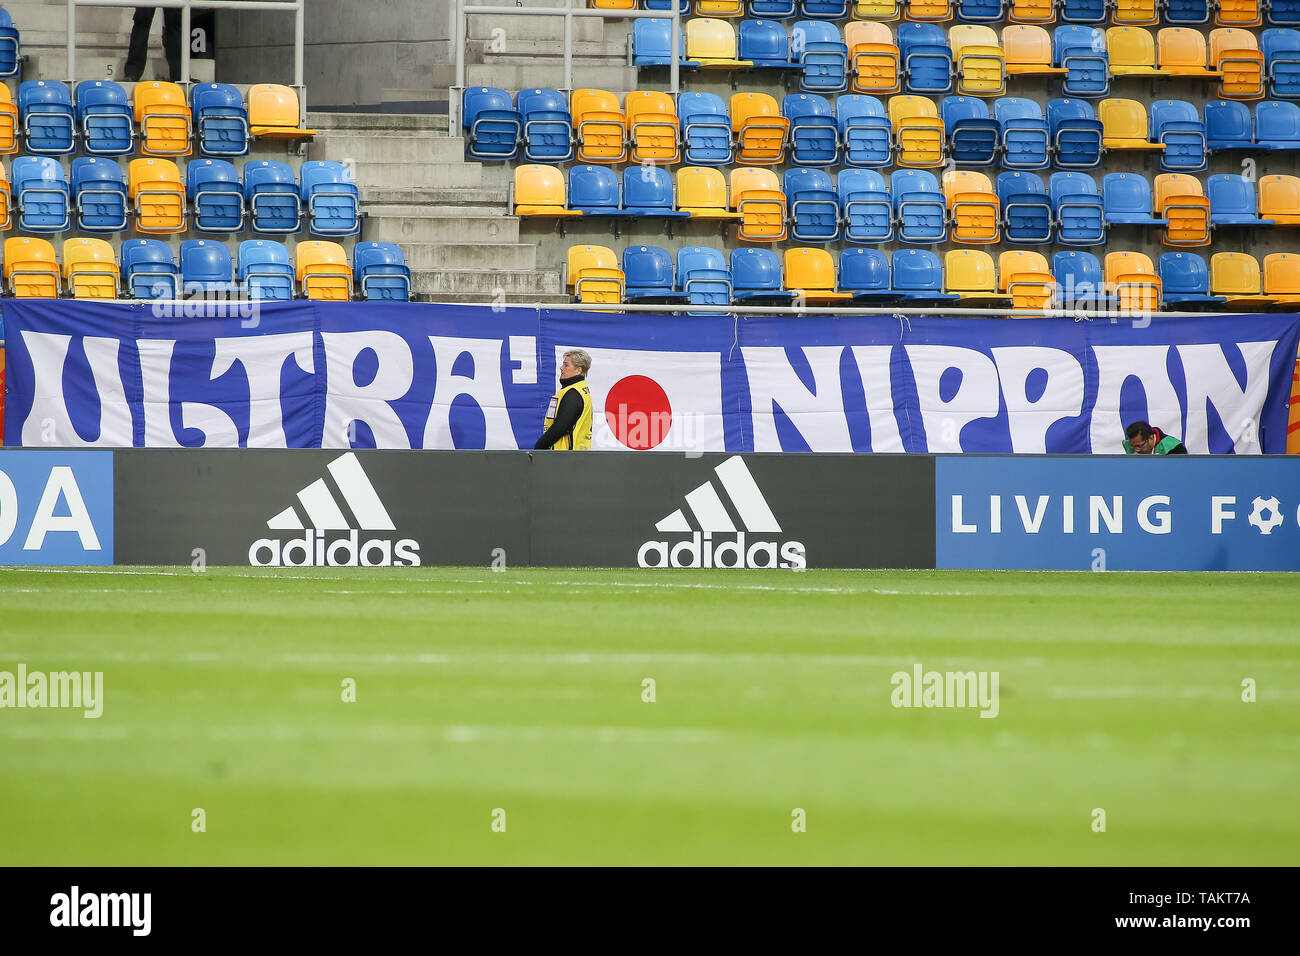 Gdynia Stadium, Gdynia, Poland - 26th May, 2019: Japan Ultras Nippon flag seen during FIFA U-20 World Cup match between Mexico and Japan (GROUP B) in Gdynia. (Final score; Mexico 0:3 Japan) - Stock Image